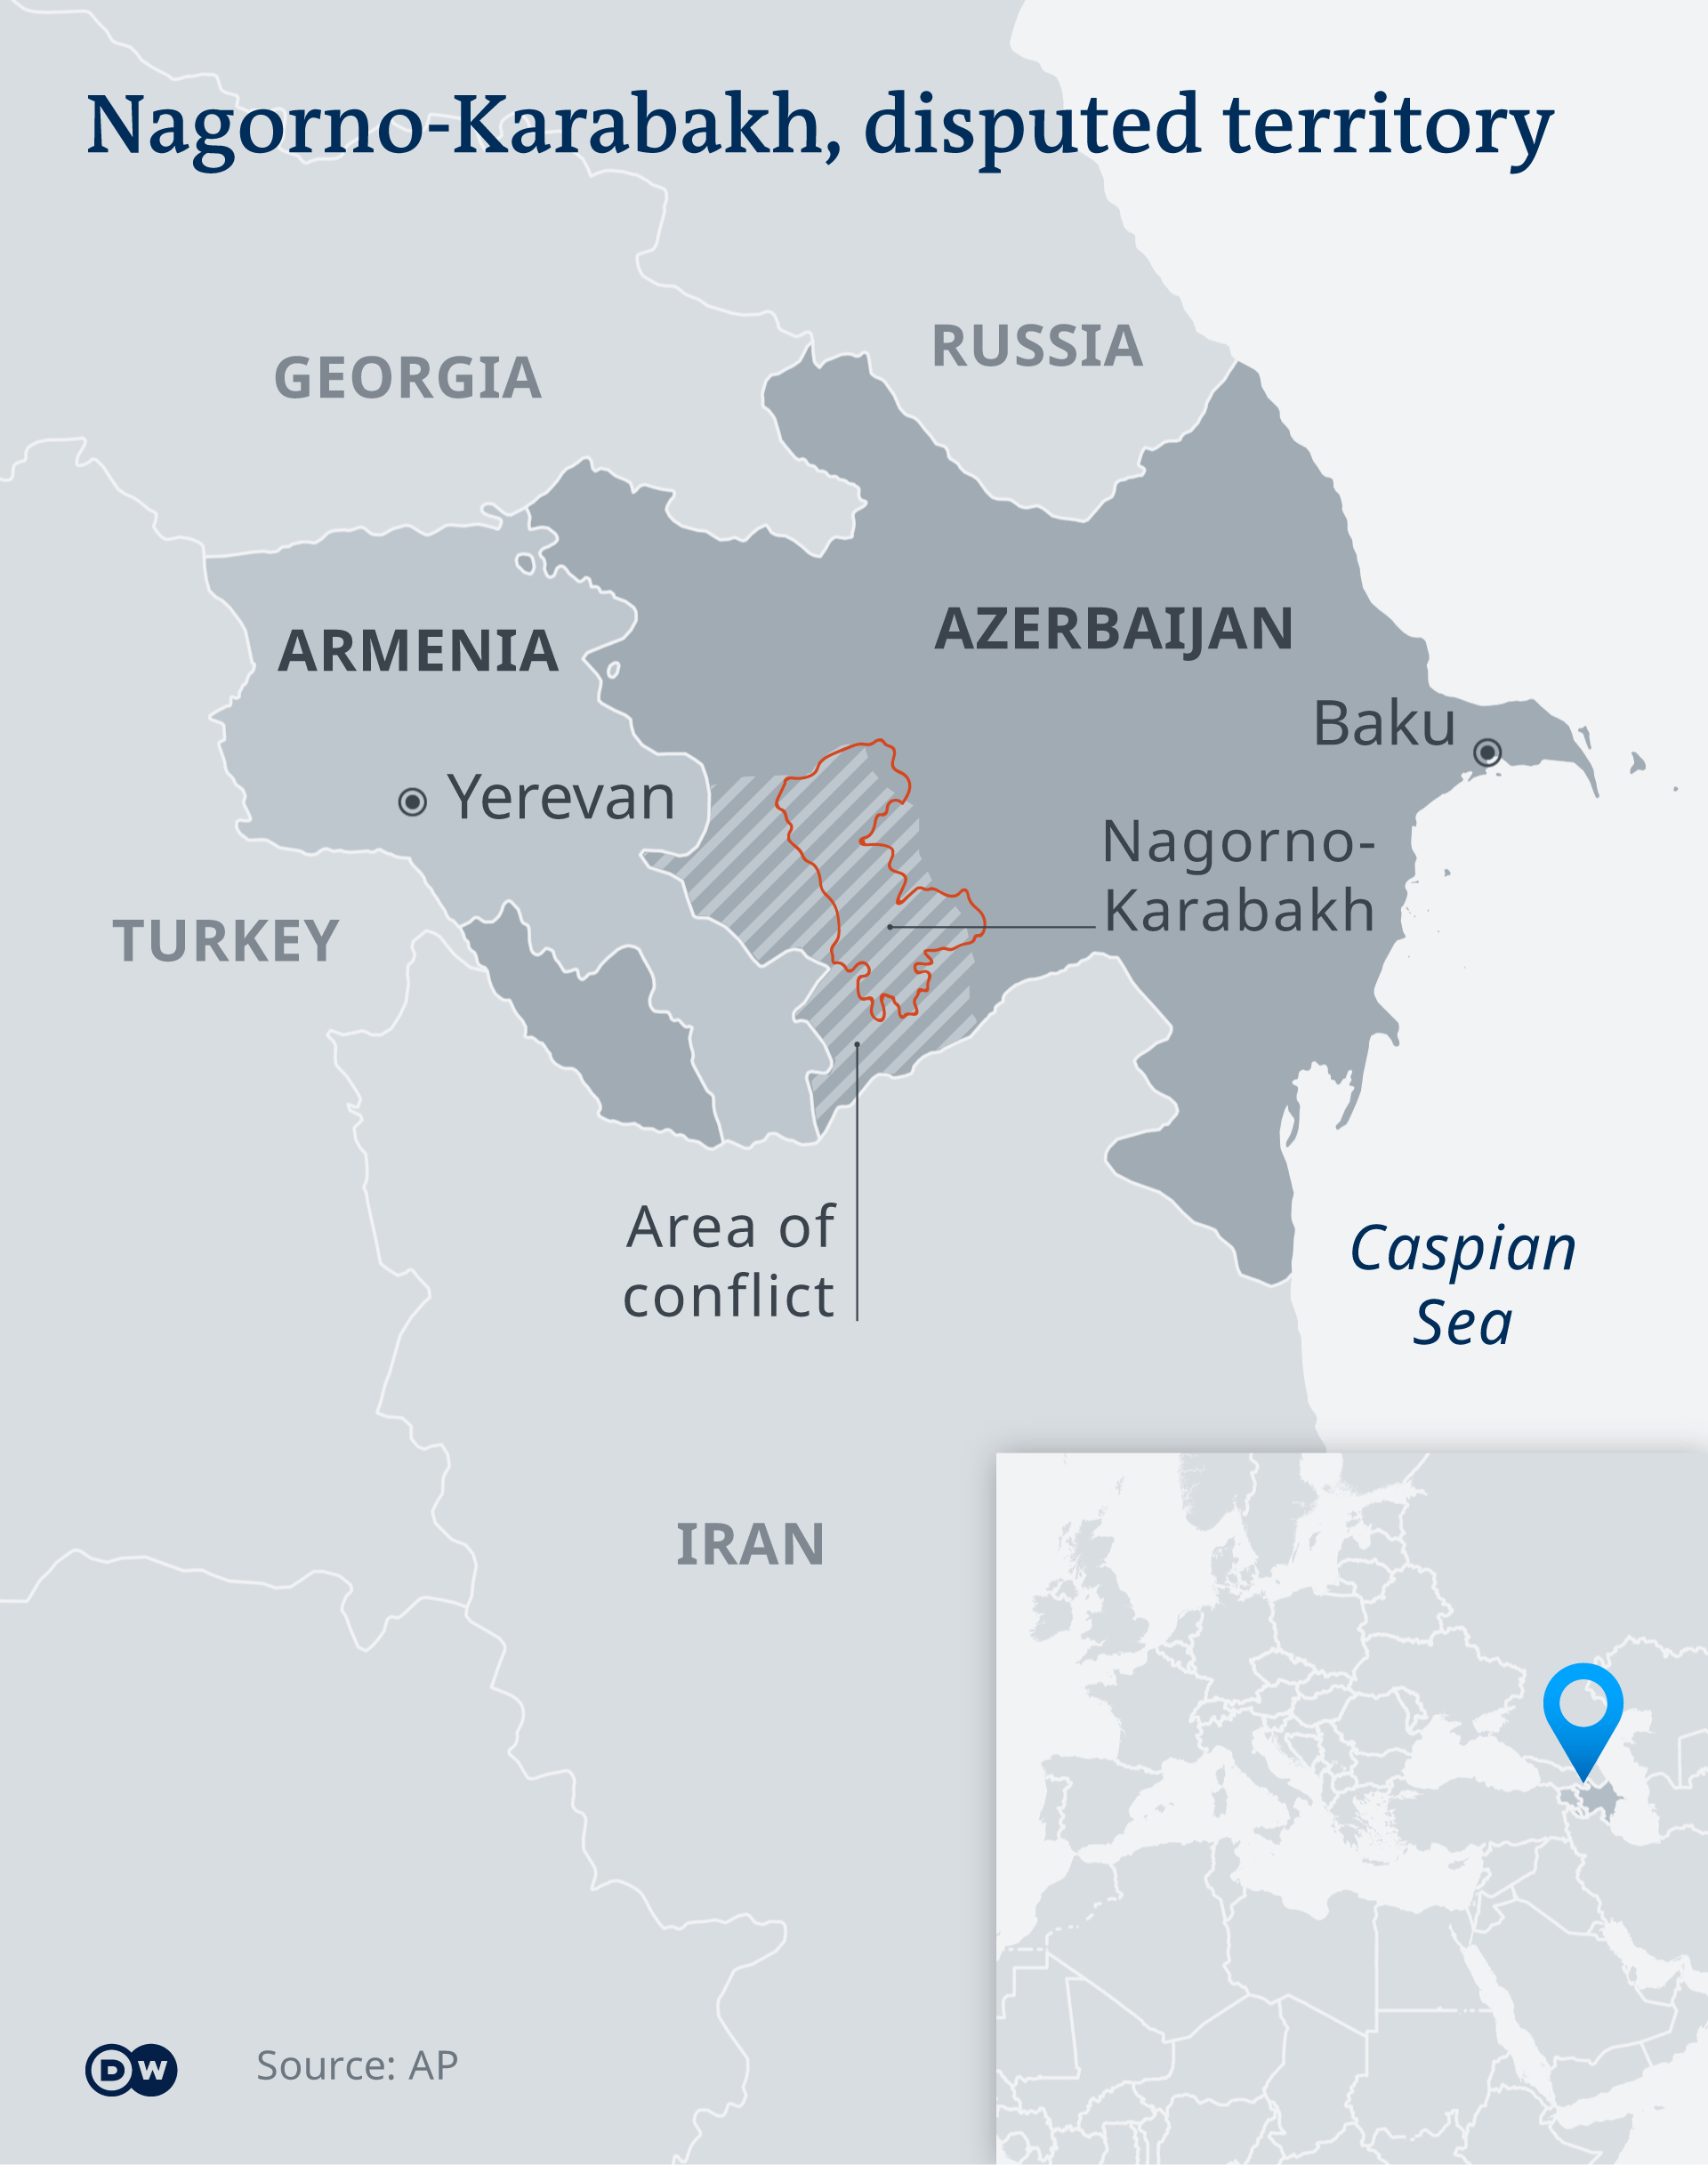 Armenia Reports Heavy Fighting With Azerbaijan In Disputed Nagorno Karabakh Region Gagrule Net